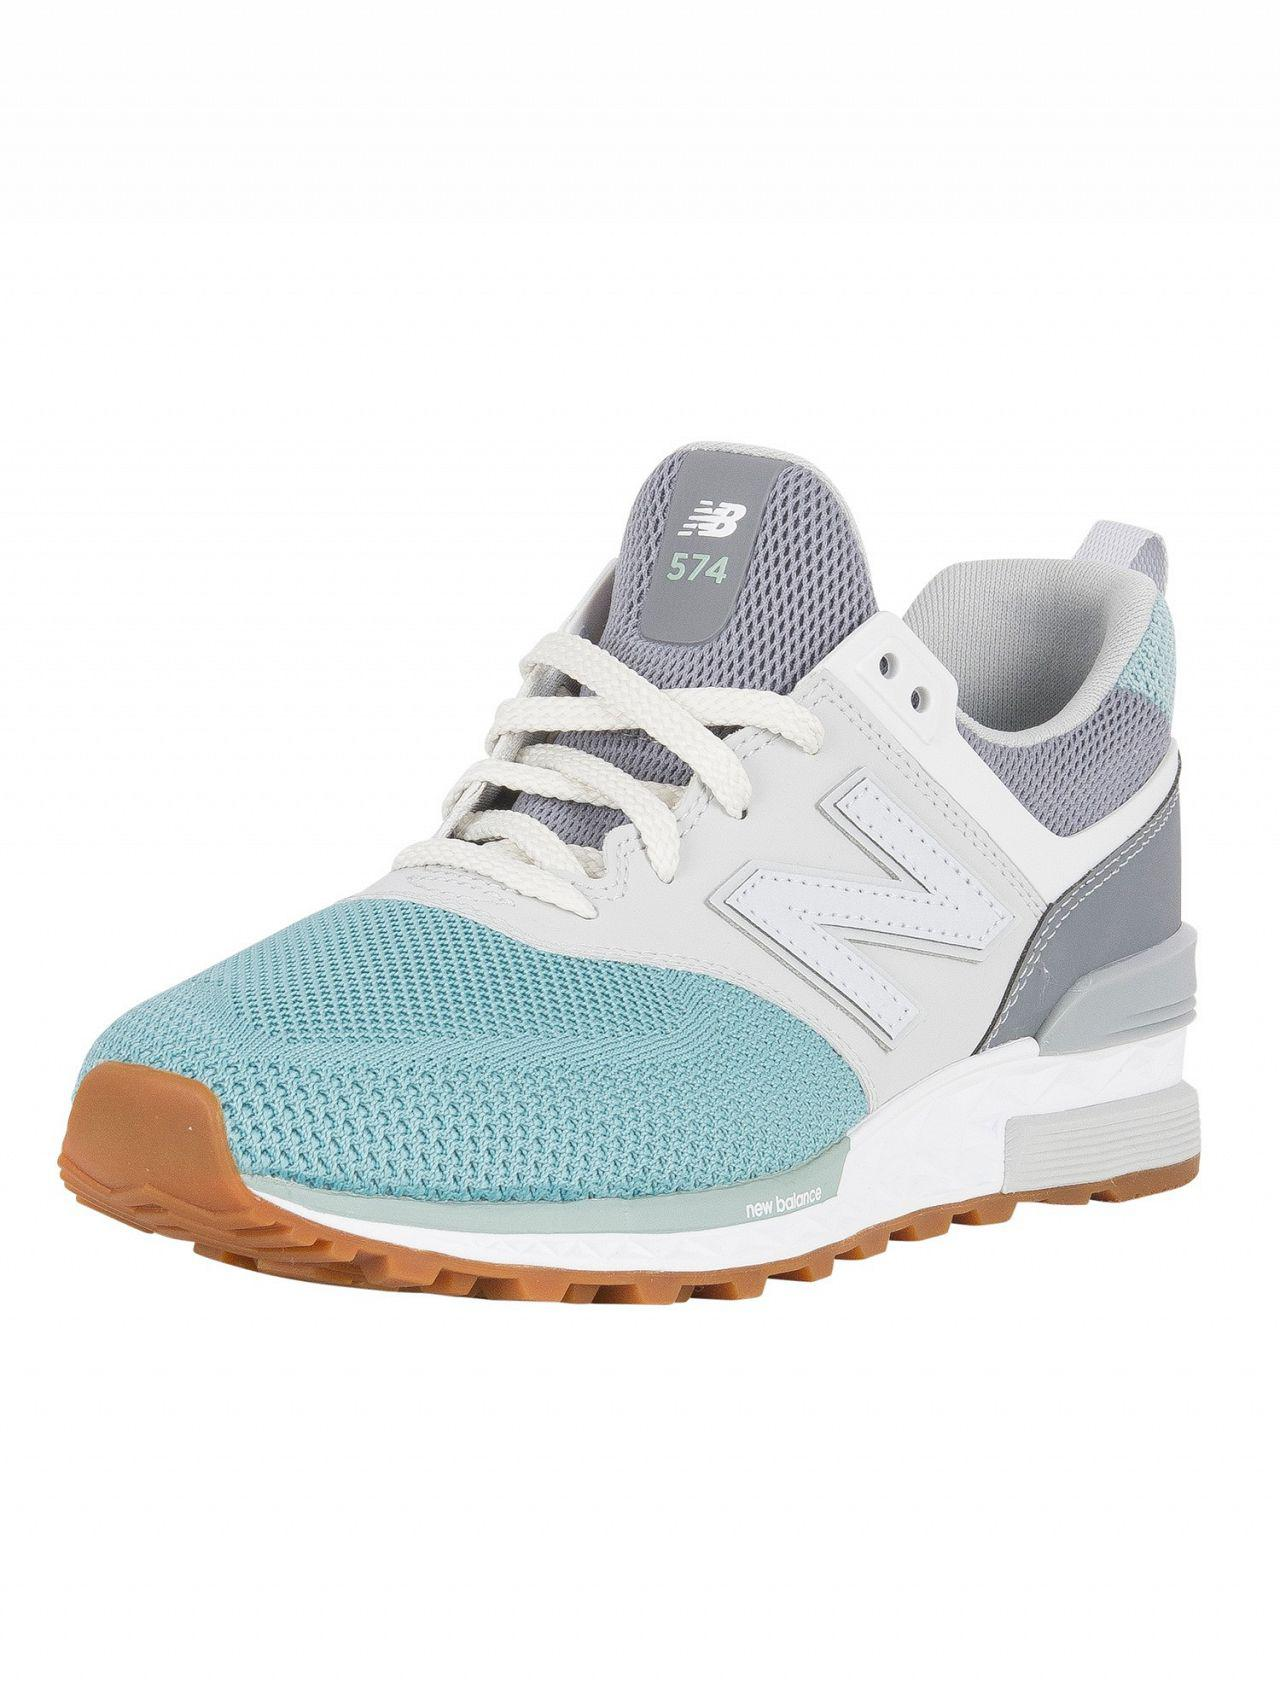 04e3ece99b9a New Balance Gunmetal storm Blue 574 Trainers in Blue for Men - Lyst